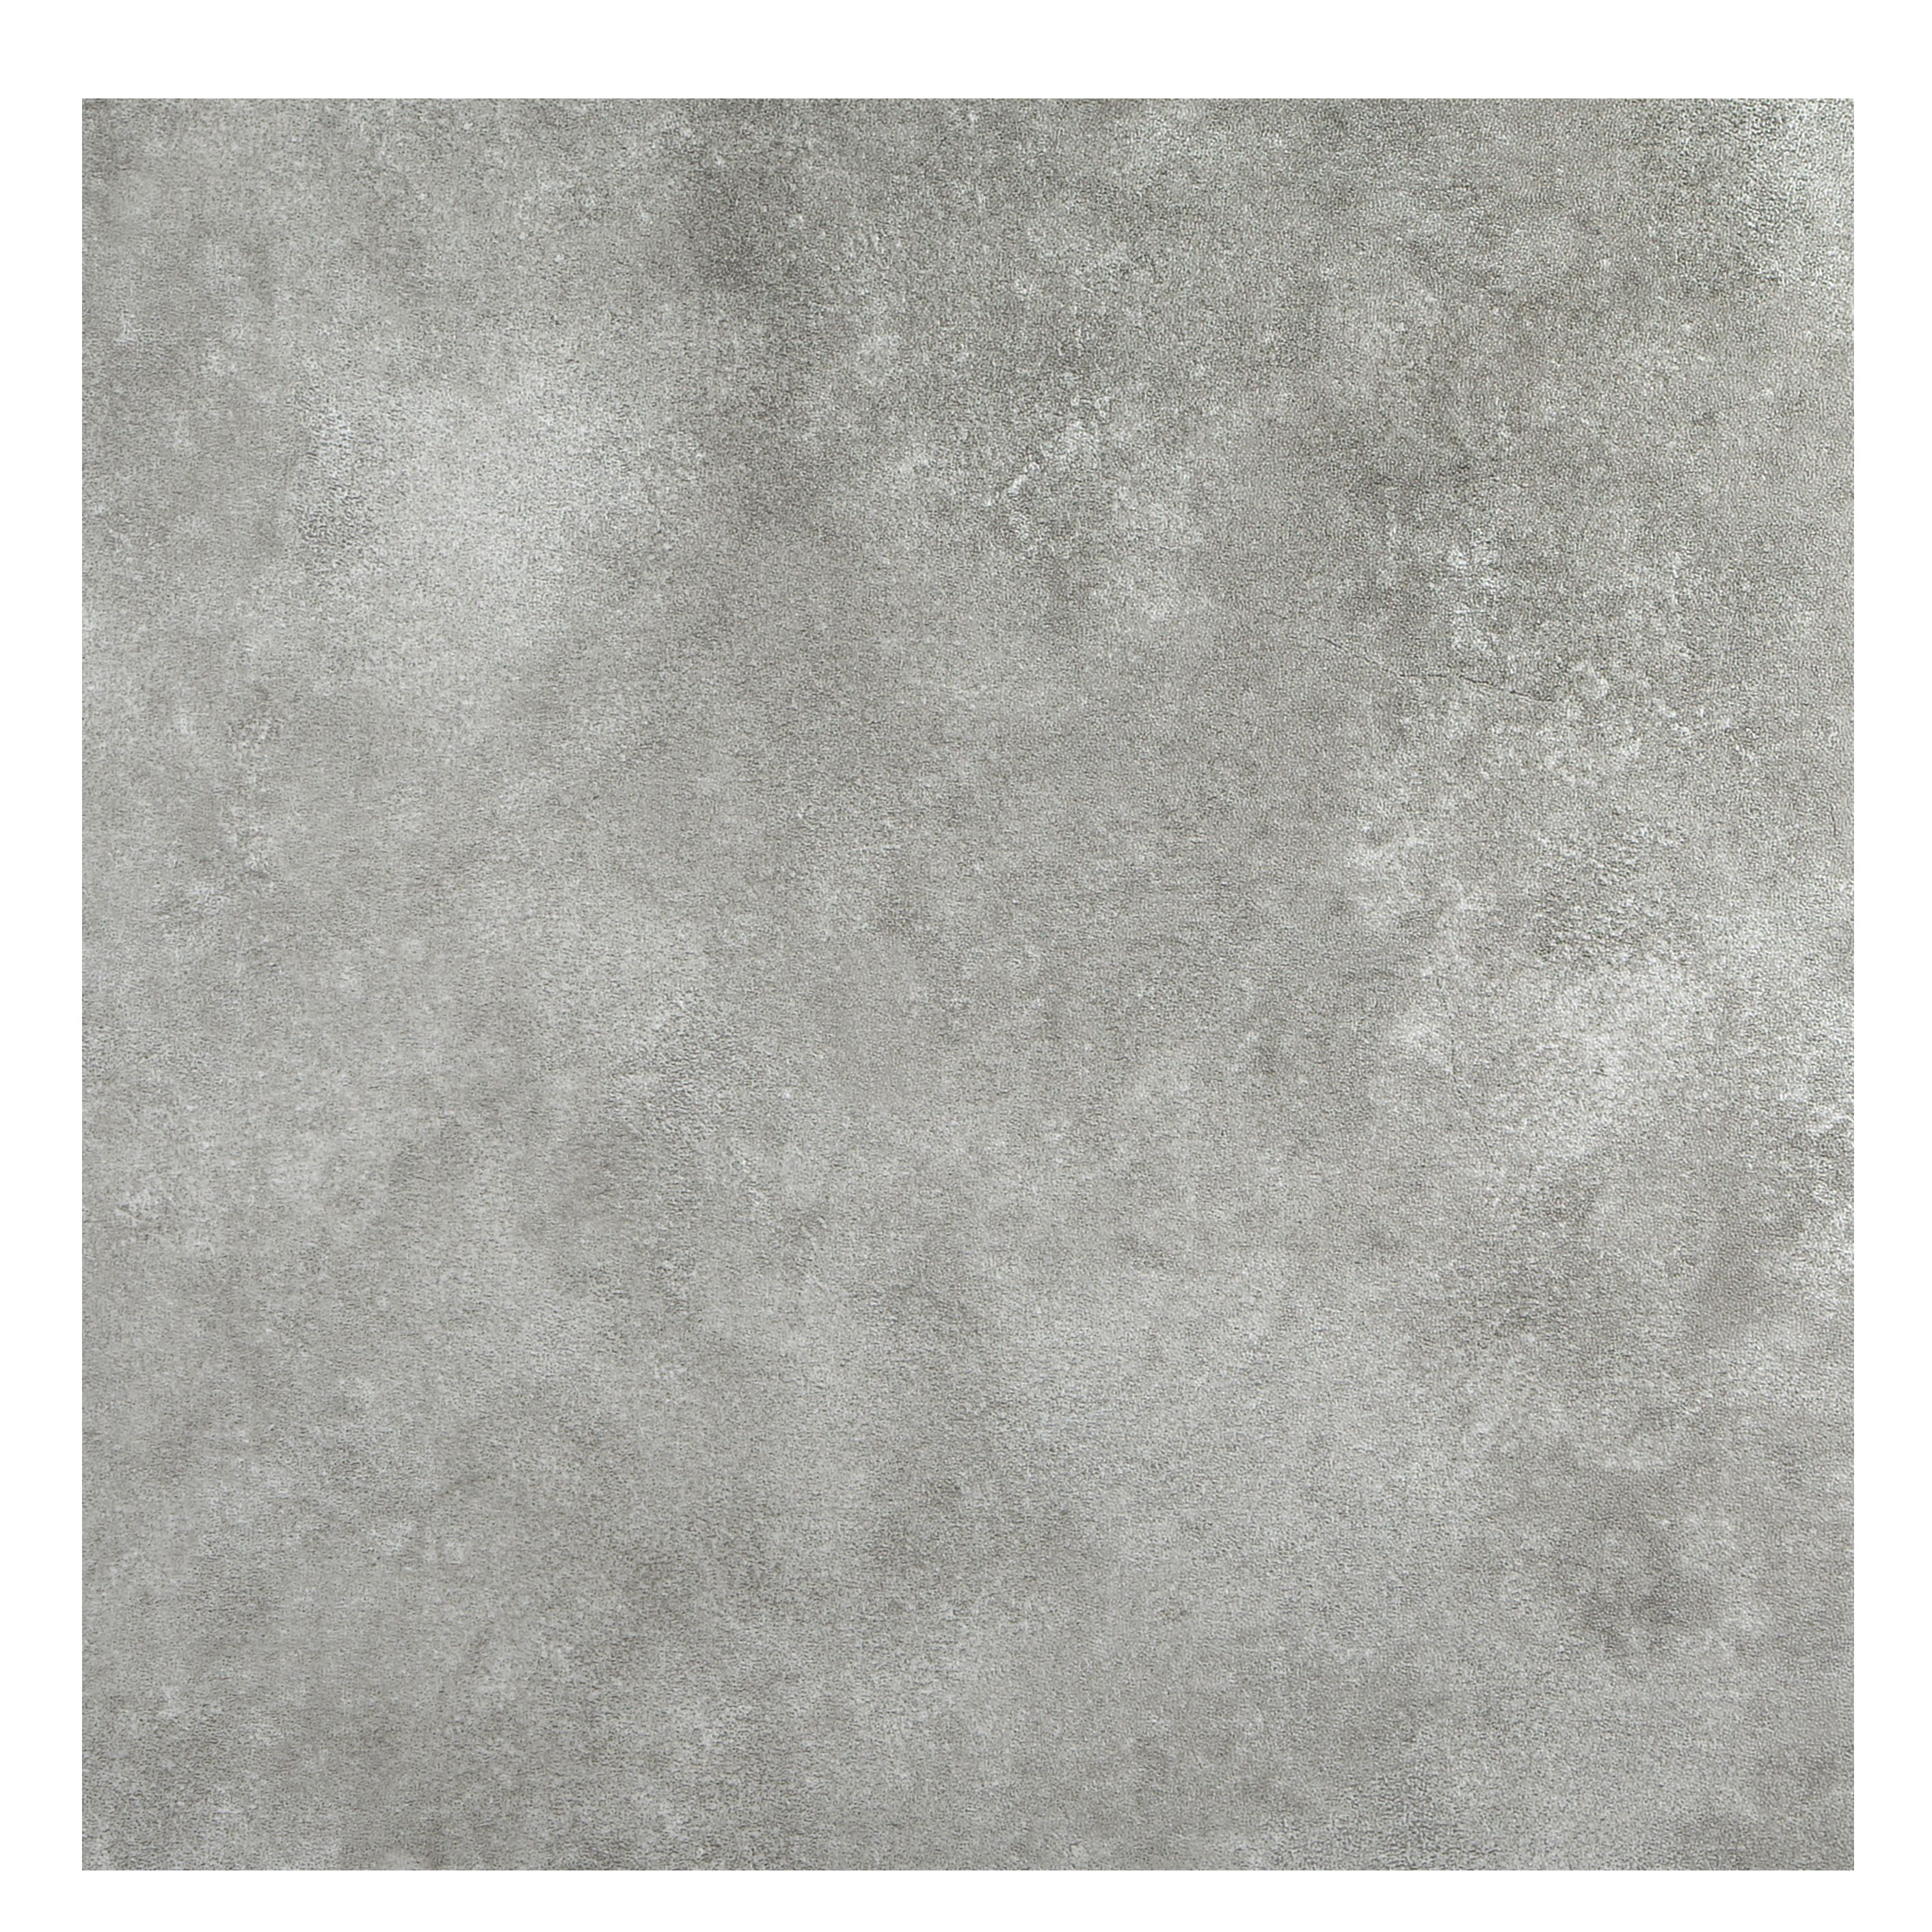 Colours Grey Stone Effect Self Adhesive Vinyl Tile 1.02m² Pack